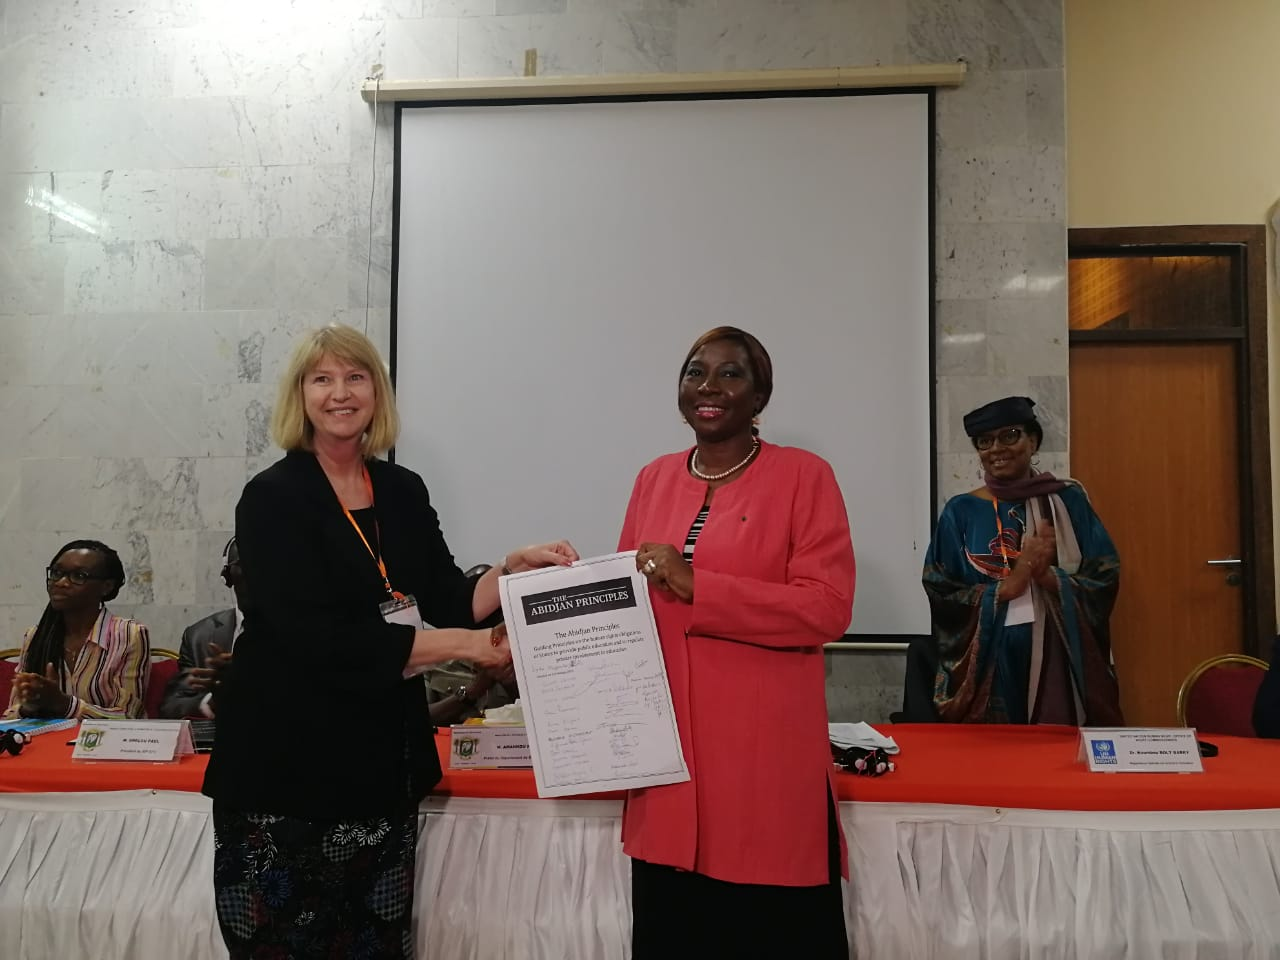 Professor Ann Skelton, chair of the drafting committee, handing over the Abidjan Principles to the Minister of Education in Abidjan on 13 February 2019.